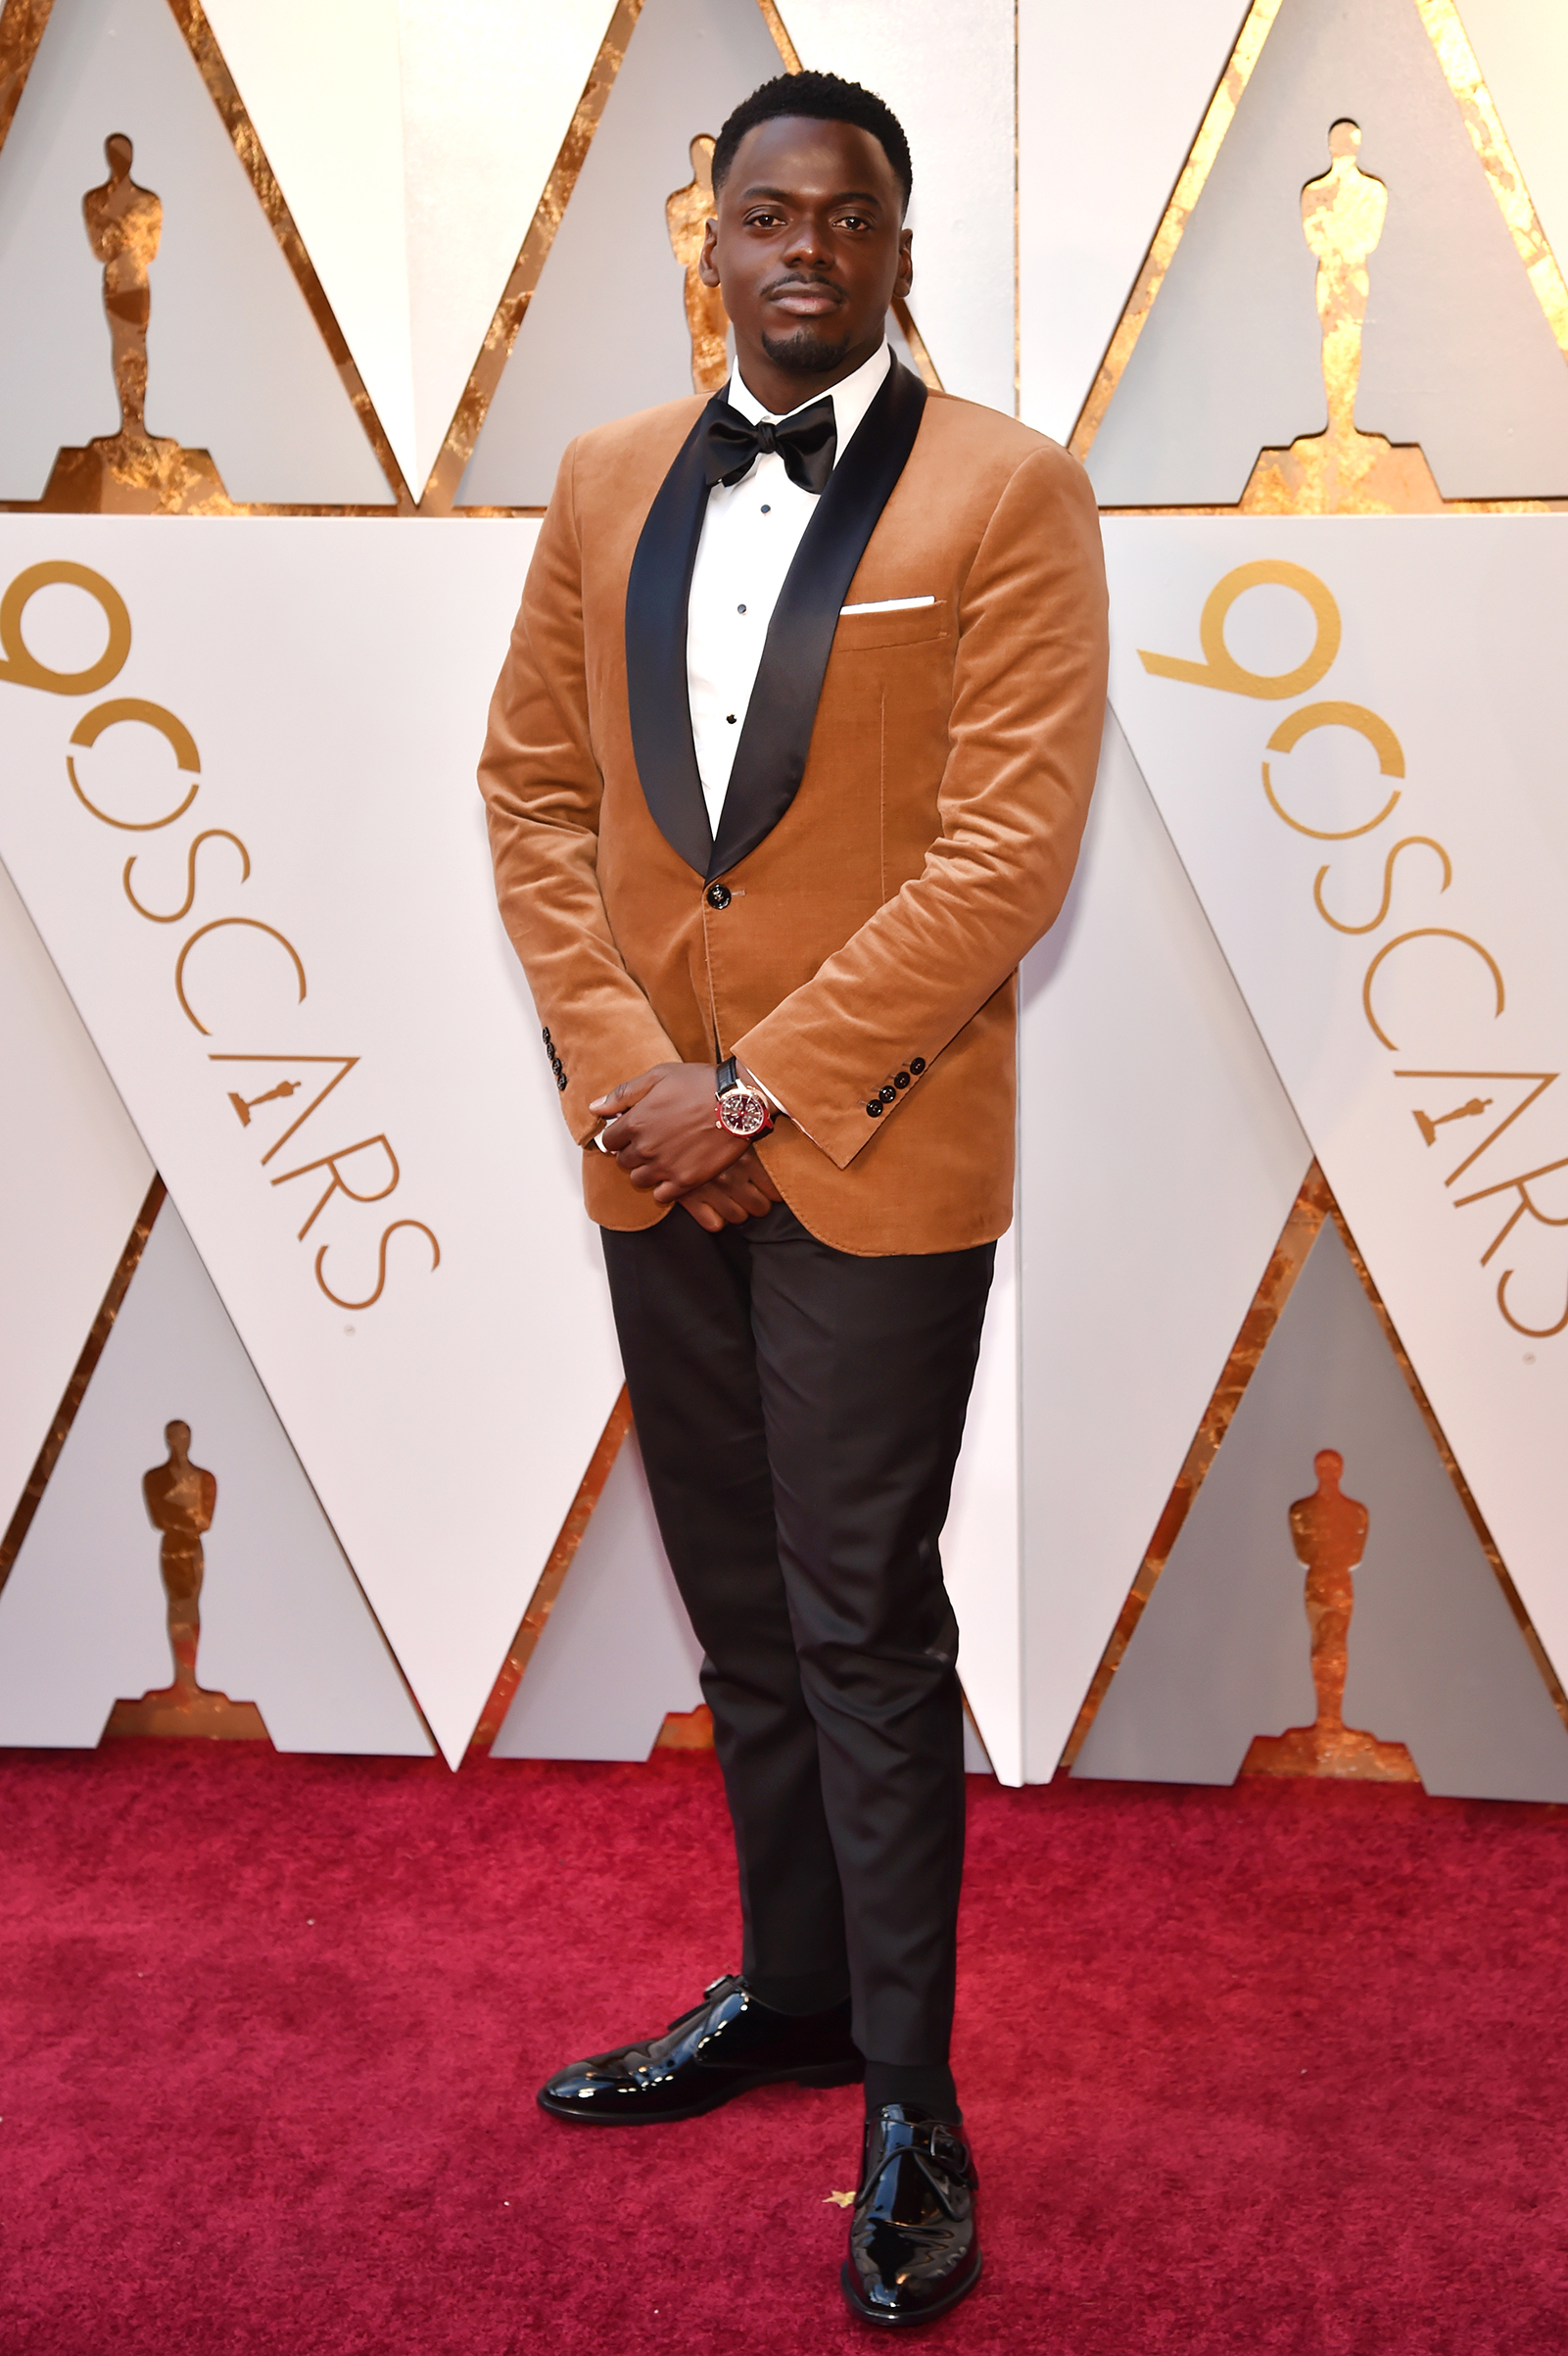 Daniel Kaluuya attends the 90th Annual Academy Awards at Hollywood & Highland Center on March 4.